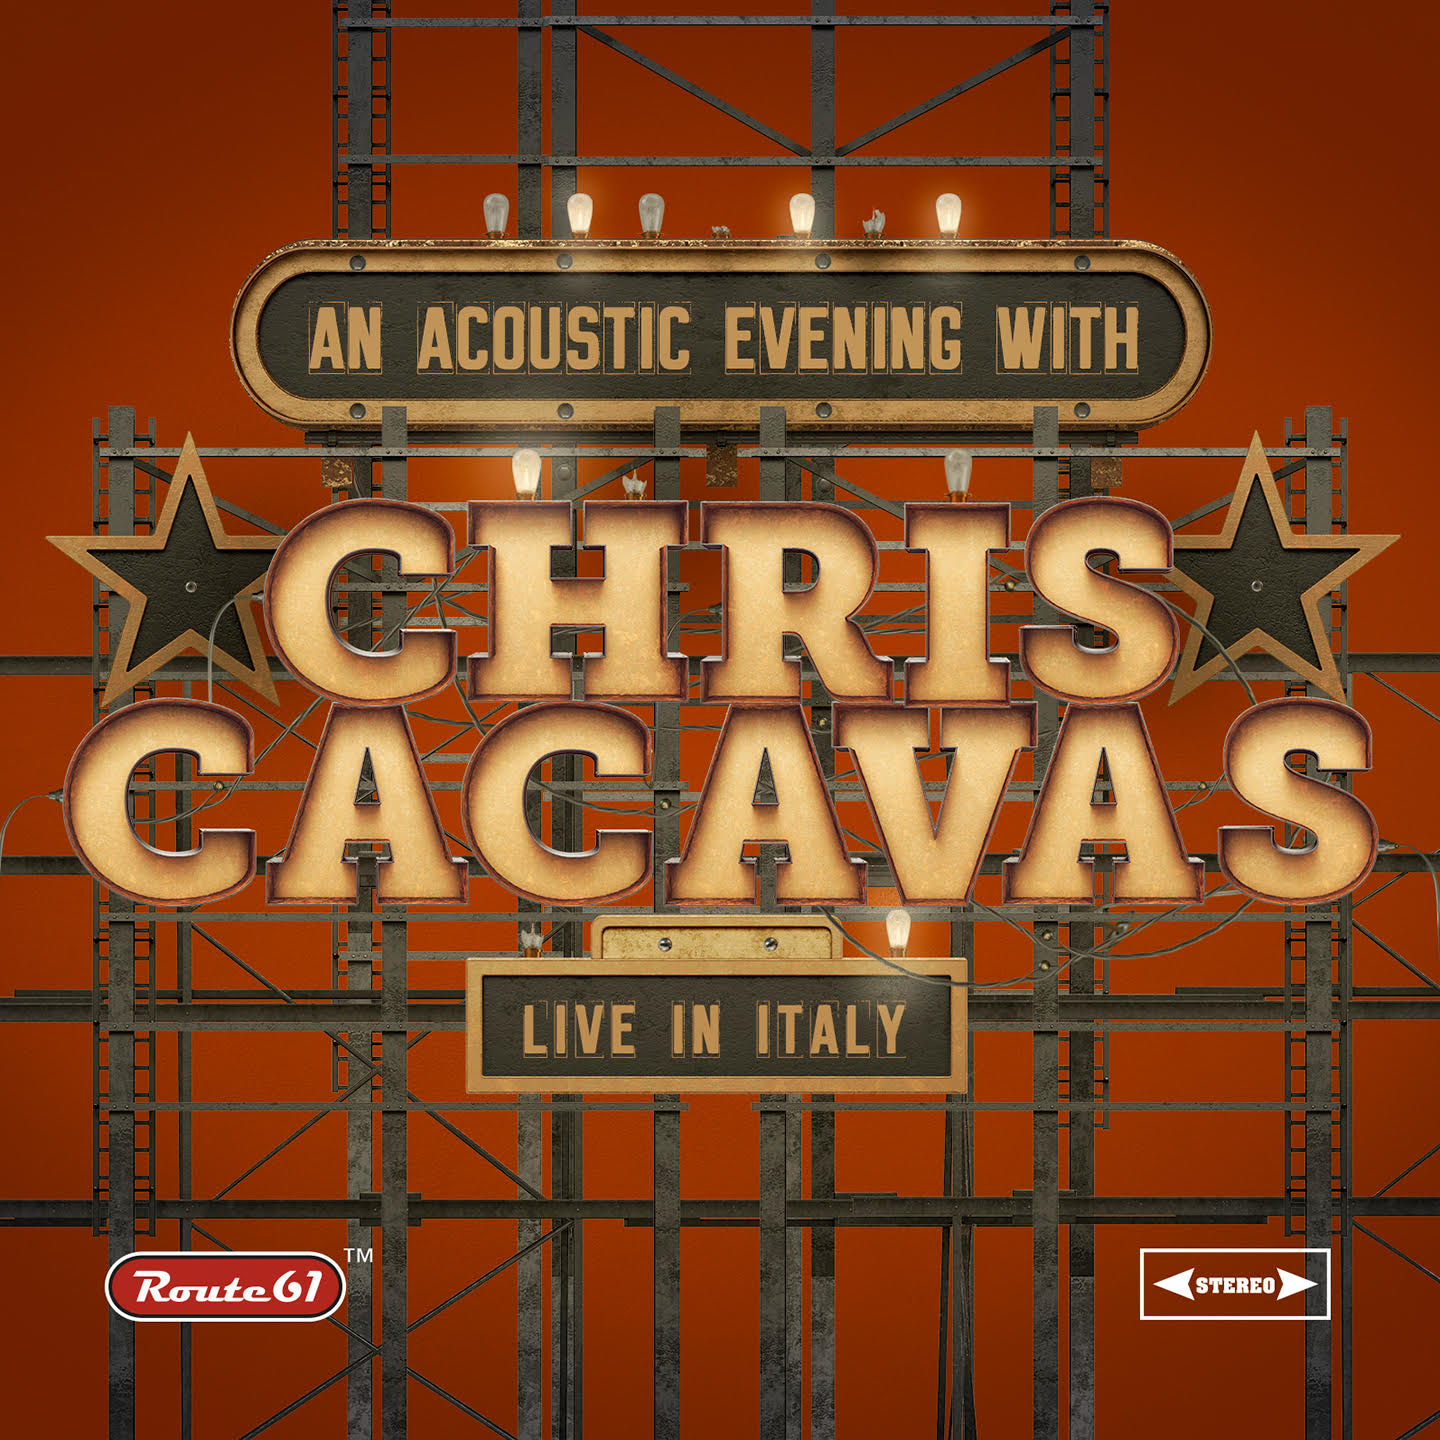 Chris Cacavas - An evening with